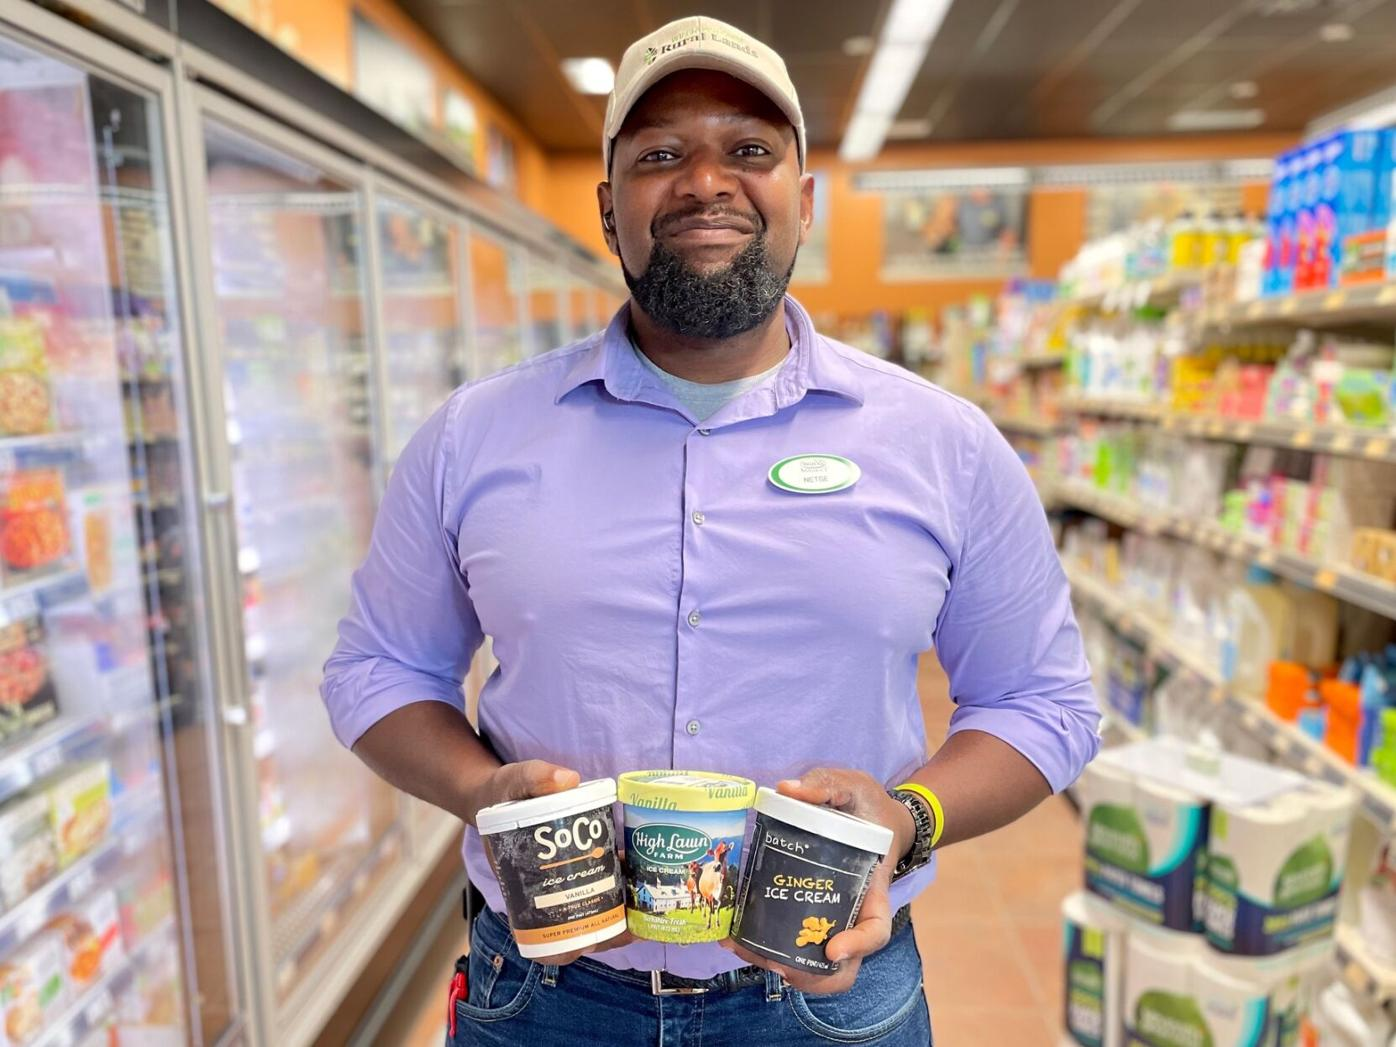 Co-op manager poses in the frozen aisle with three pints of ice cream